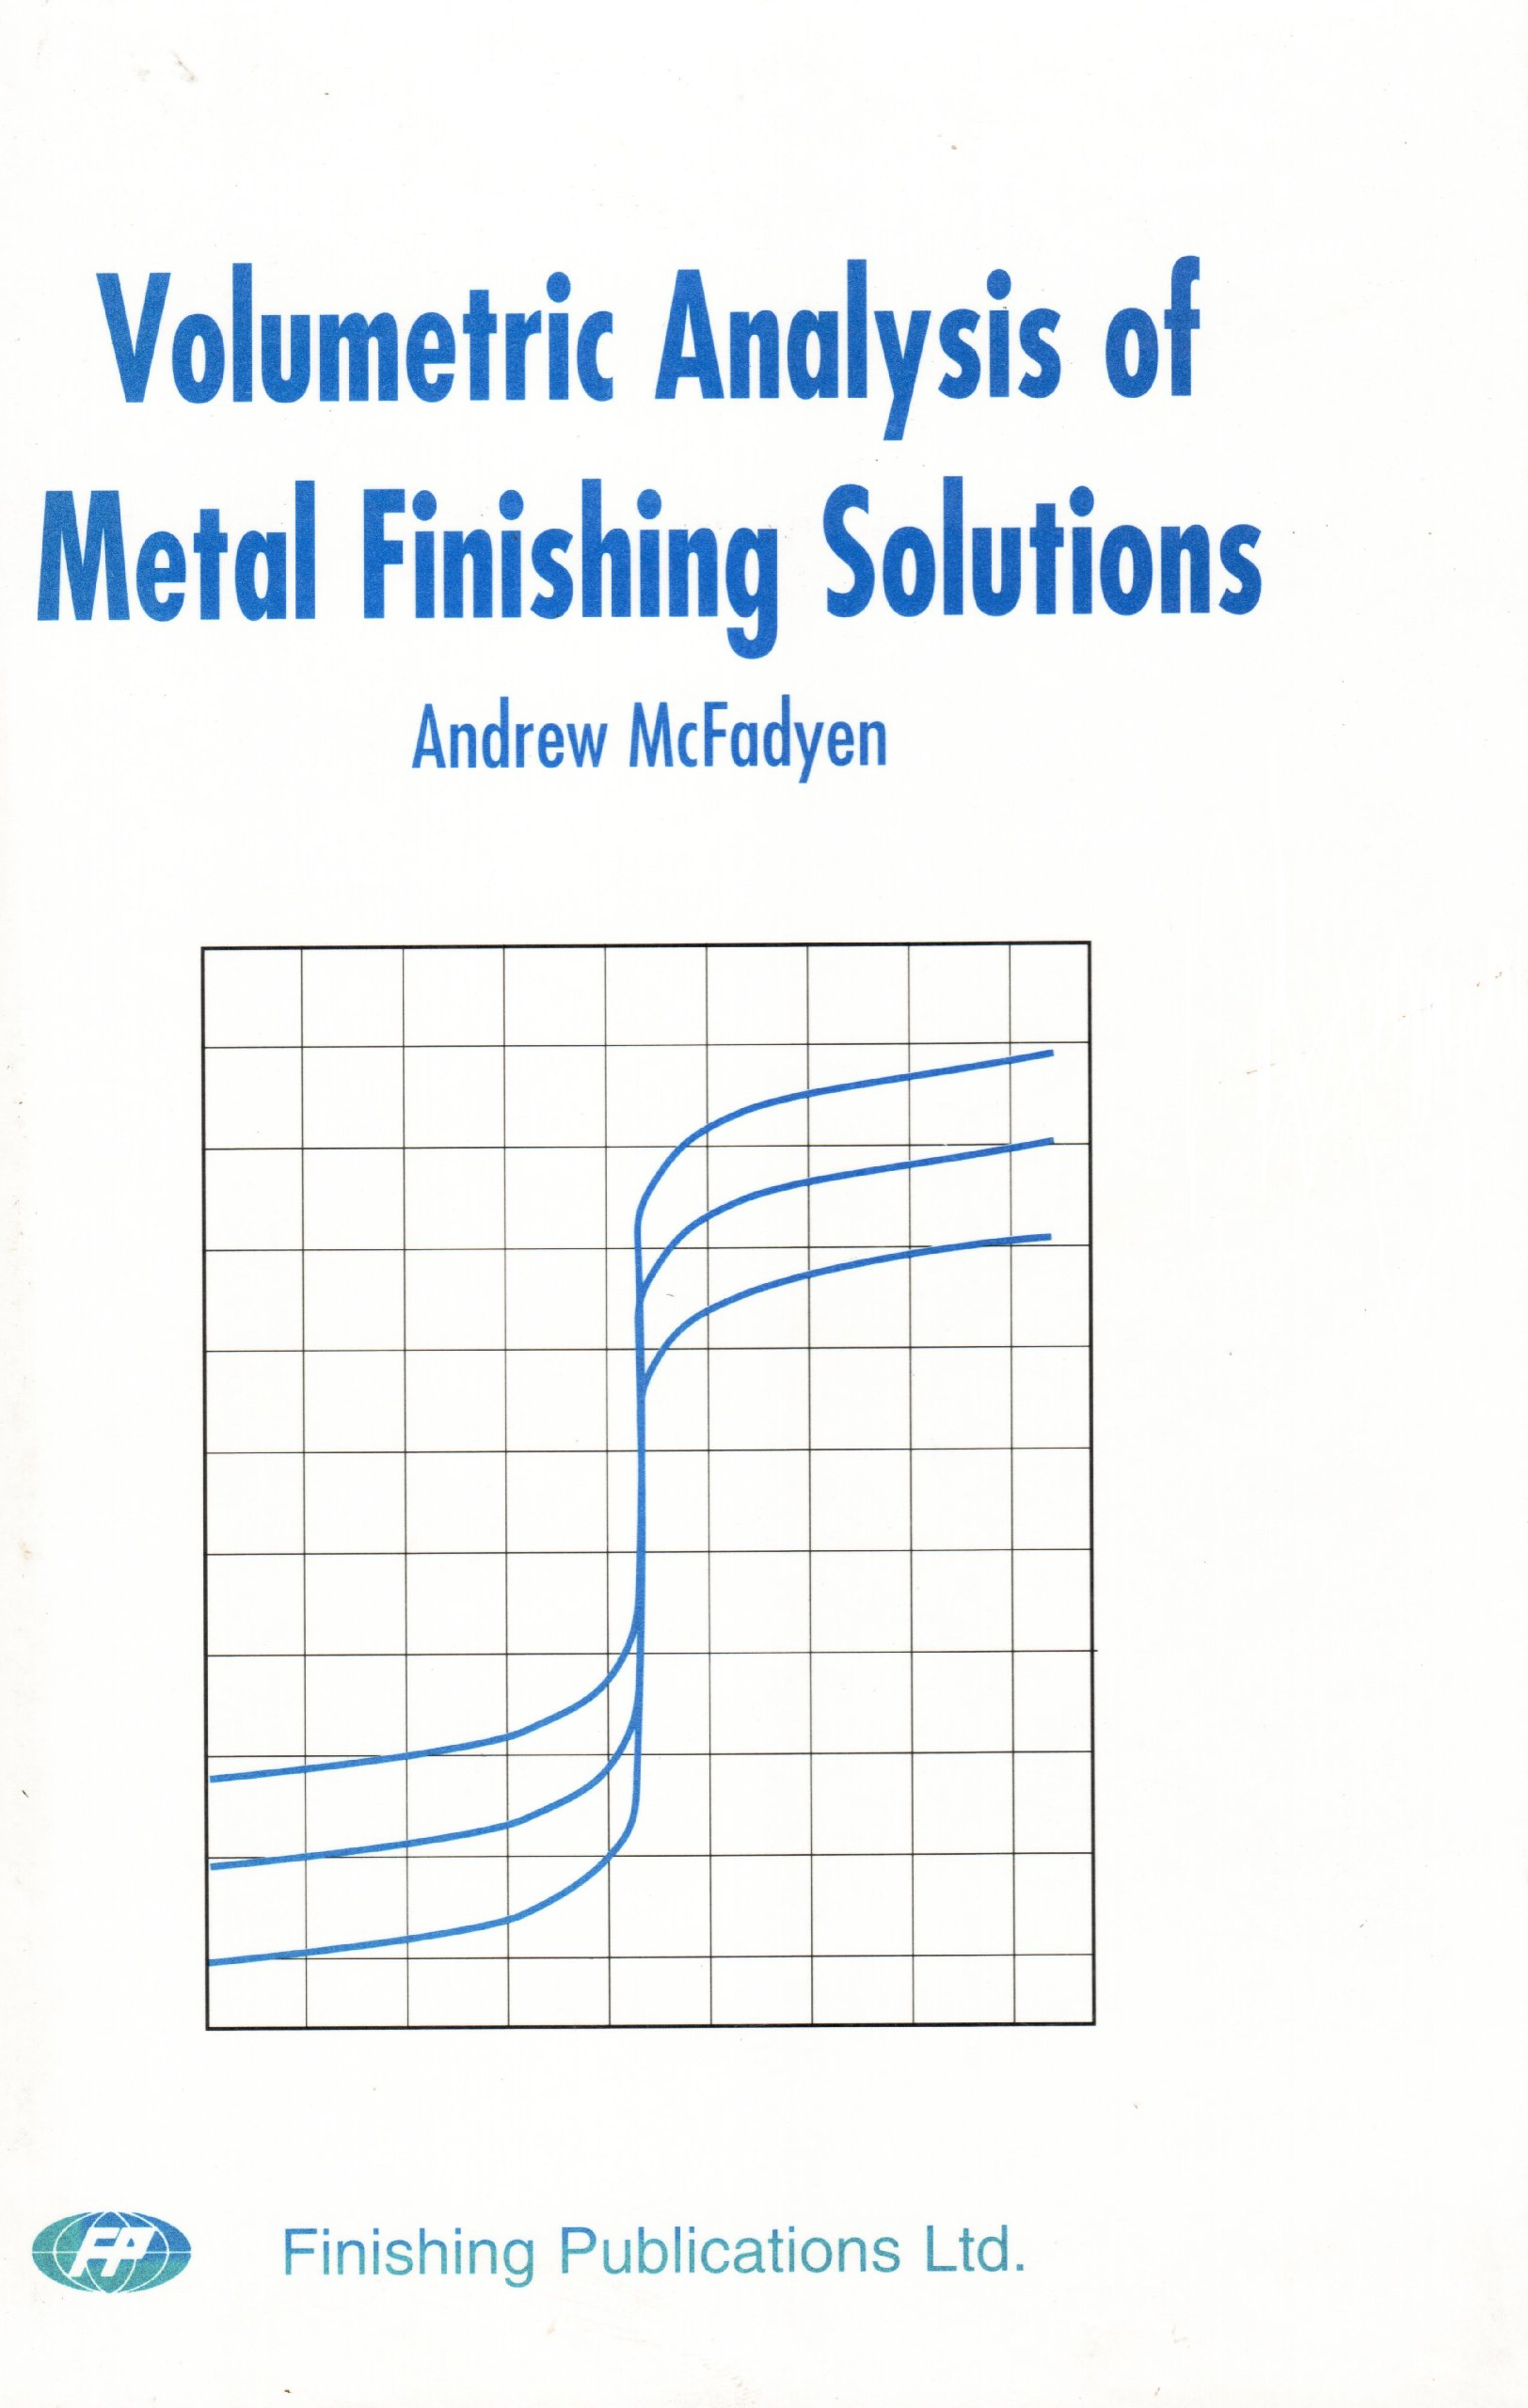 Volumetric analysis of metal finishing solutions livros na amazon volumetric analysis of metal finishing solutions livros na amazon brasil 9780904477177 ccuart Gallery